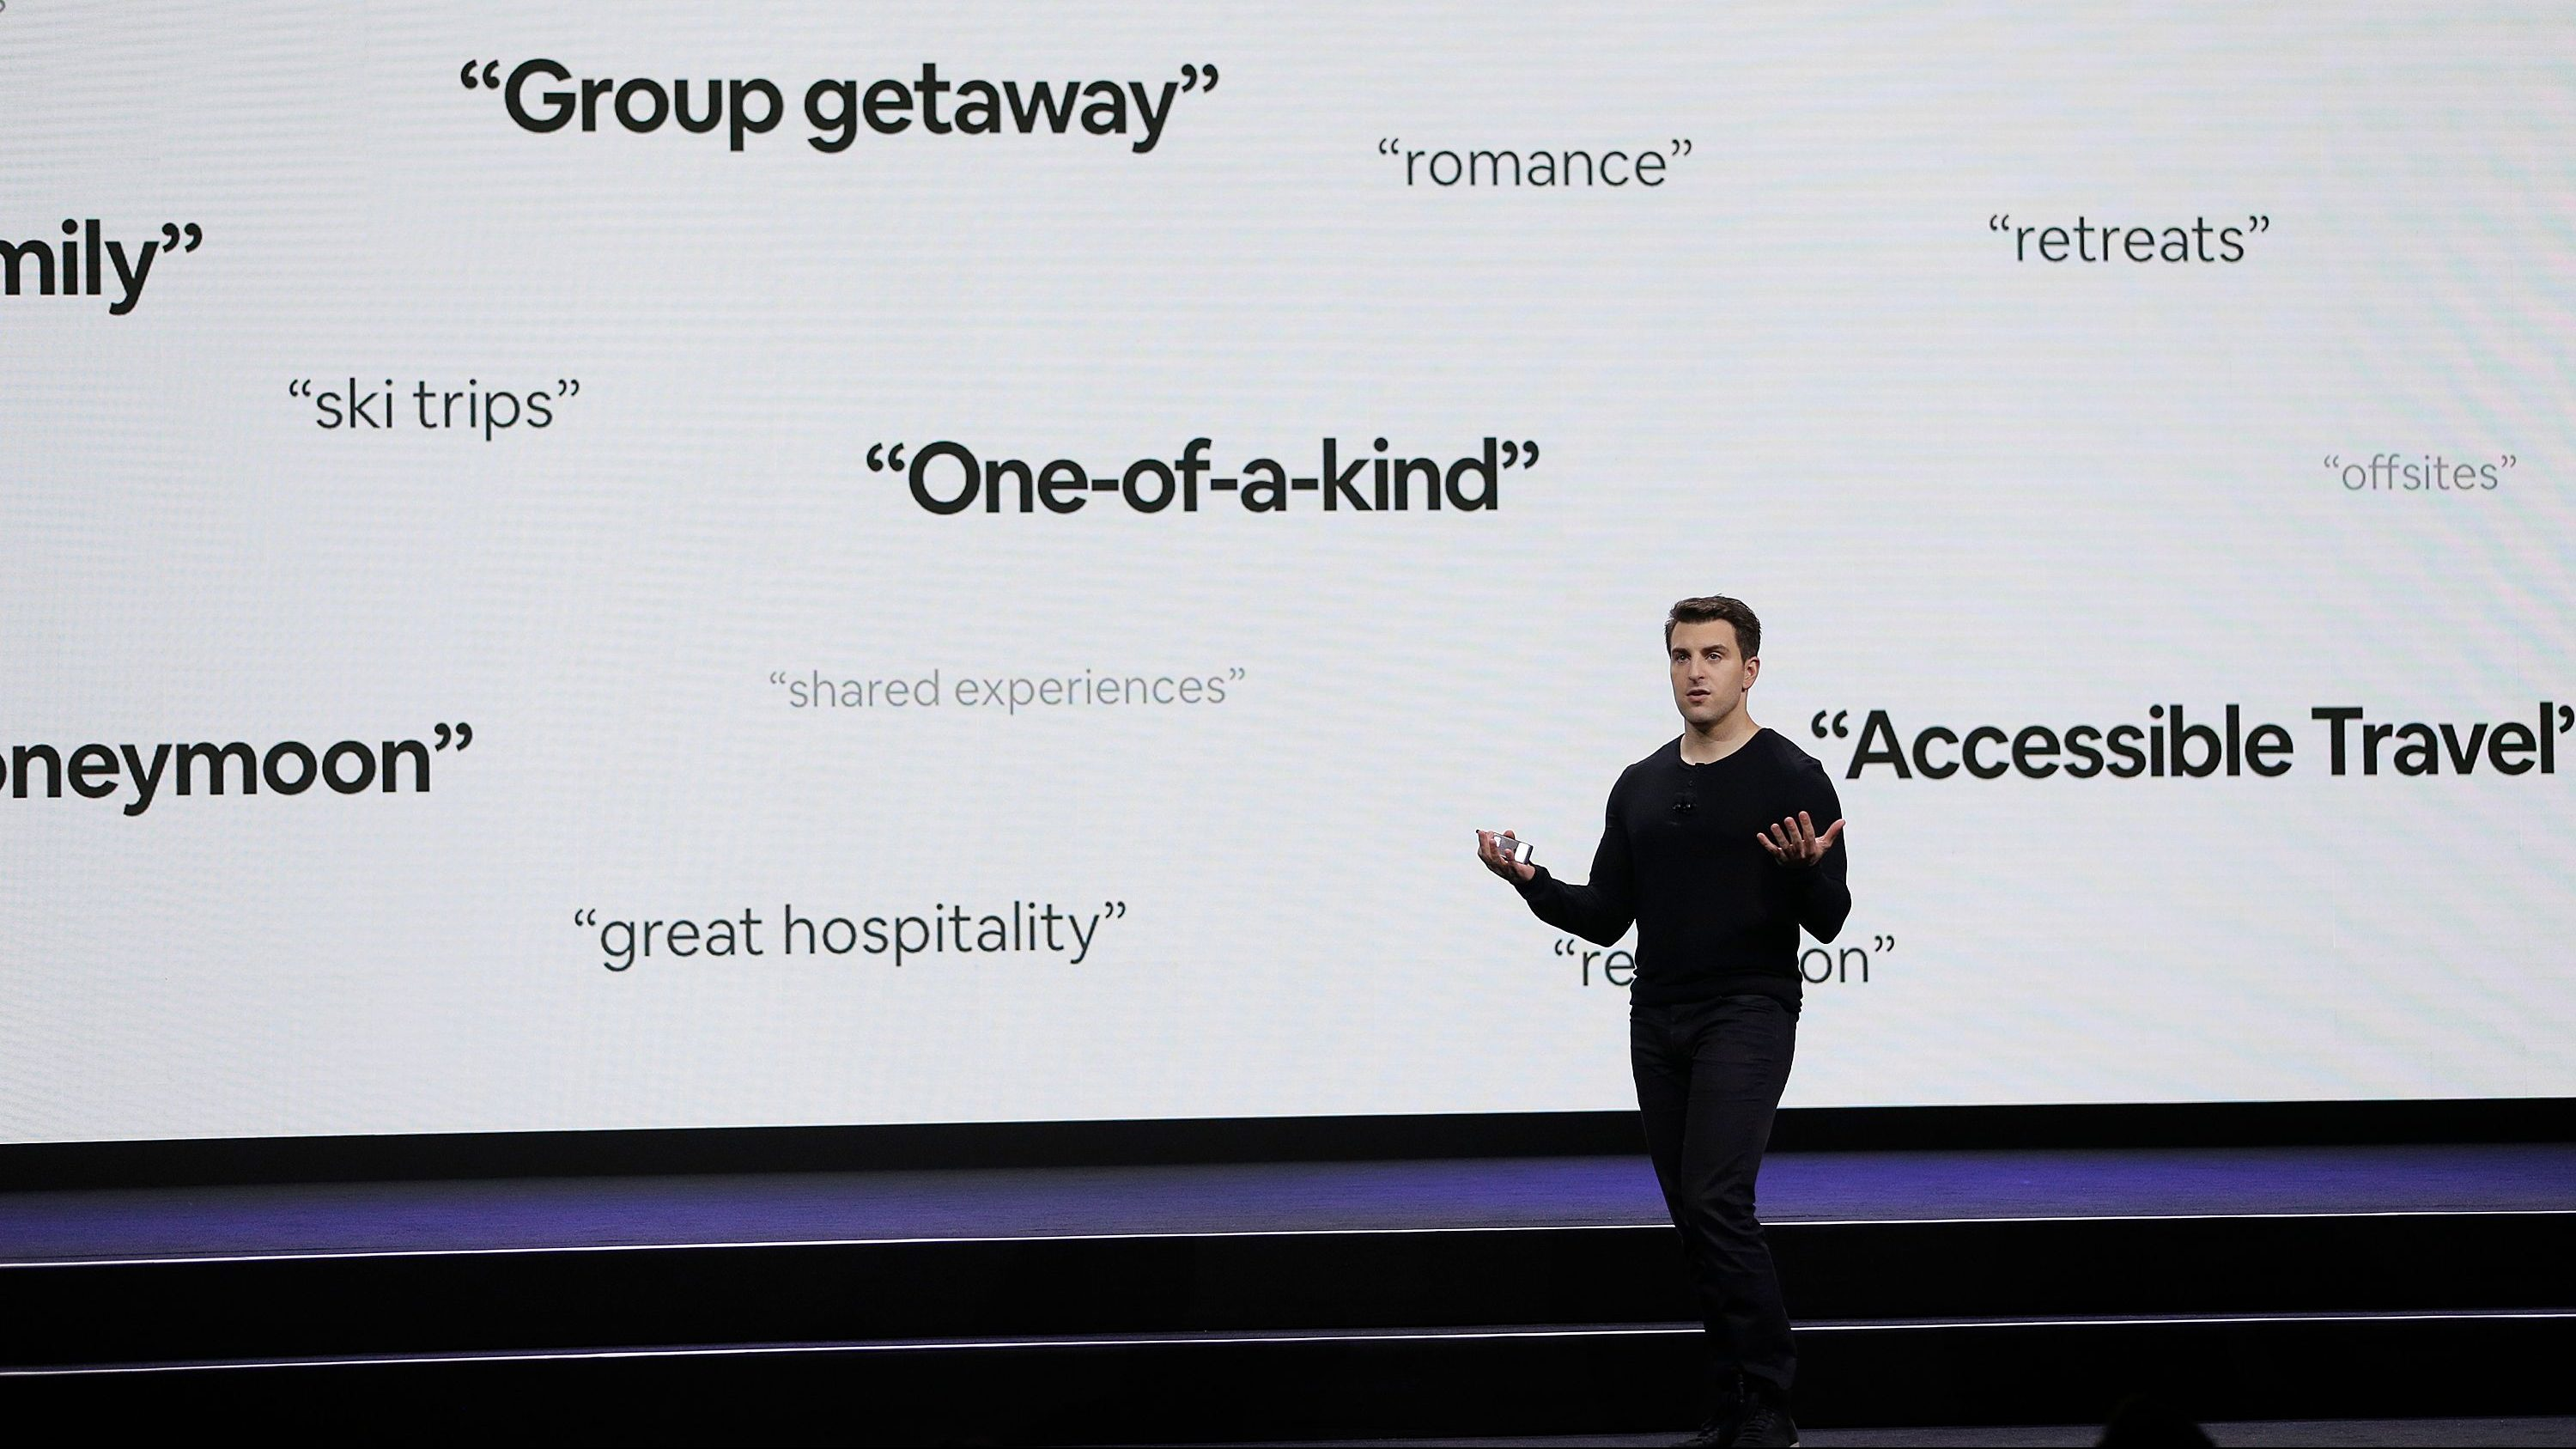 """Airbnb co-founder and CEO Brian Chesky speaks during an event Thursday, Feb. 22, 2018, in San Francisco. Airbnb is dispatching inspectors to rate a new category of properties listed on its home-rental service in an effort to reassure travelers they're booking nice places to stay. The new """"Plus"""" program unveiled Thursday initially will only cover about 2,000 homes in 13 cities. That's a small fraction of the roughly 4.5 million rentals listed on Airbnb in 81,000 of cities throughout the world. (AP Photo/Eric Risberg)"""